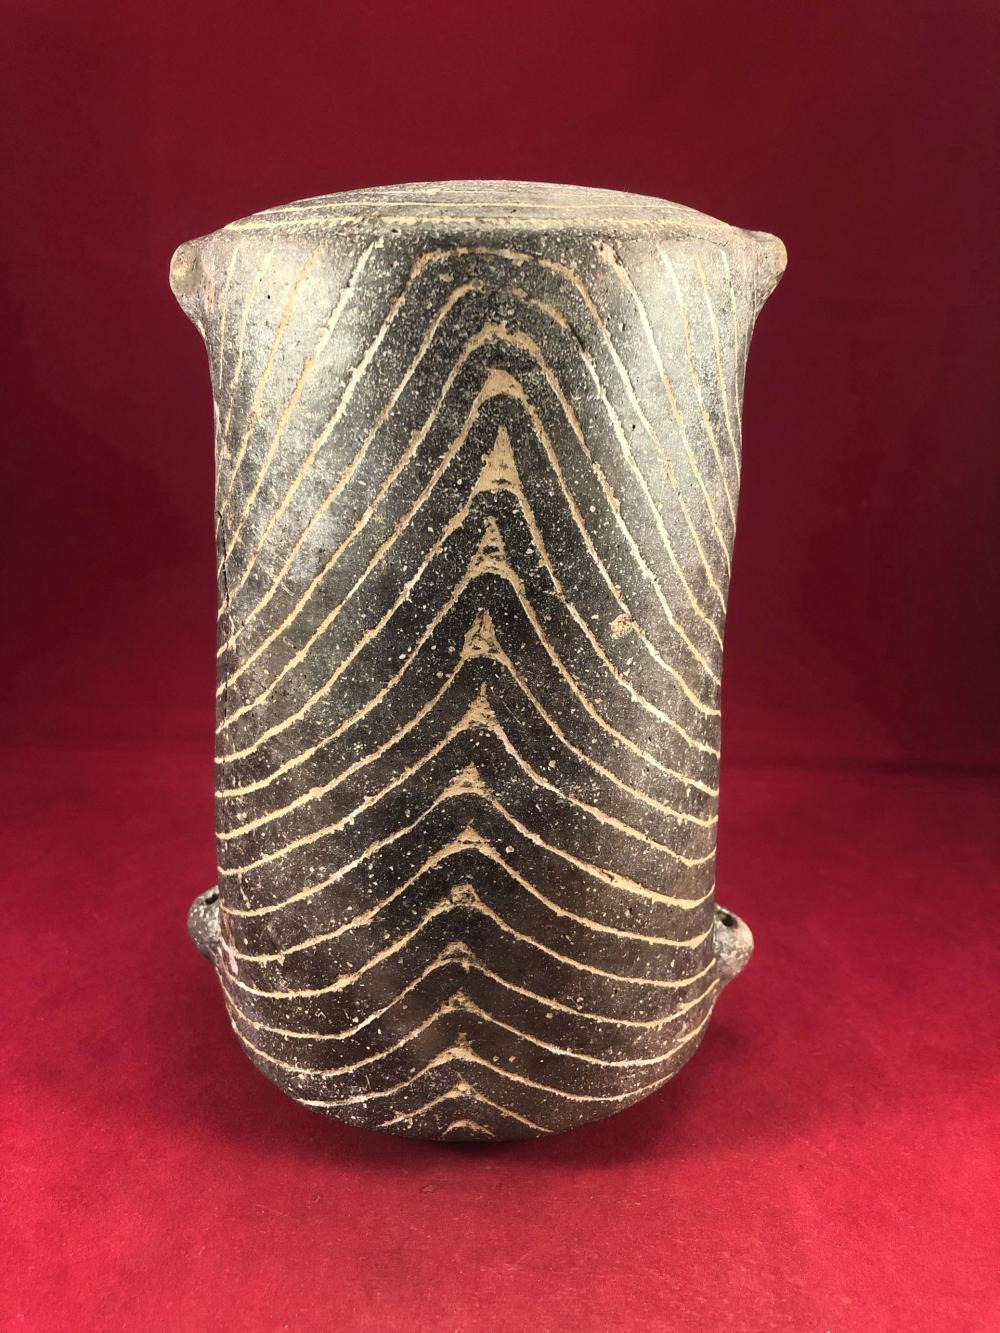 Indian Artifact Auction by Mike Nichols